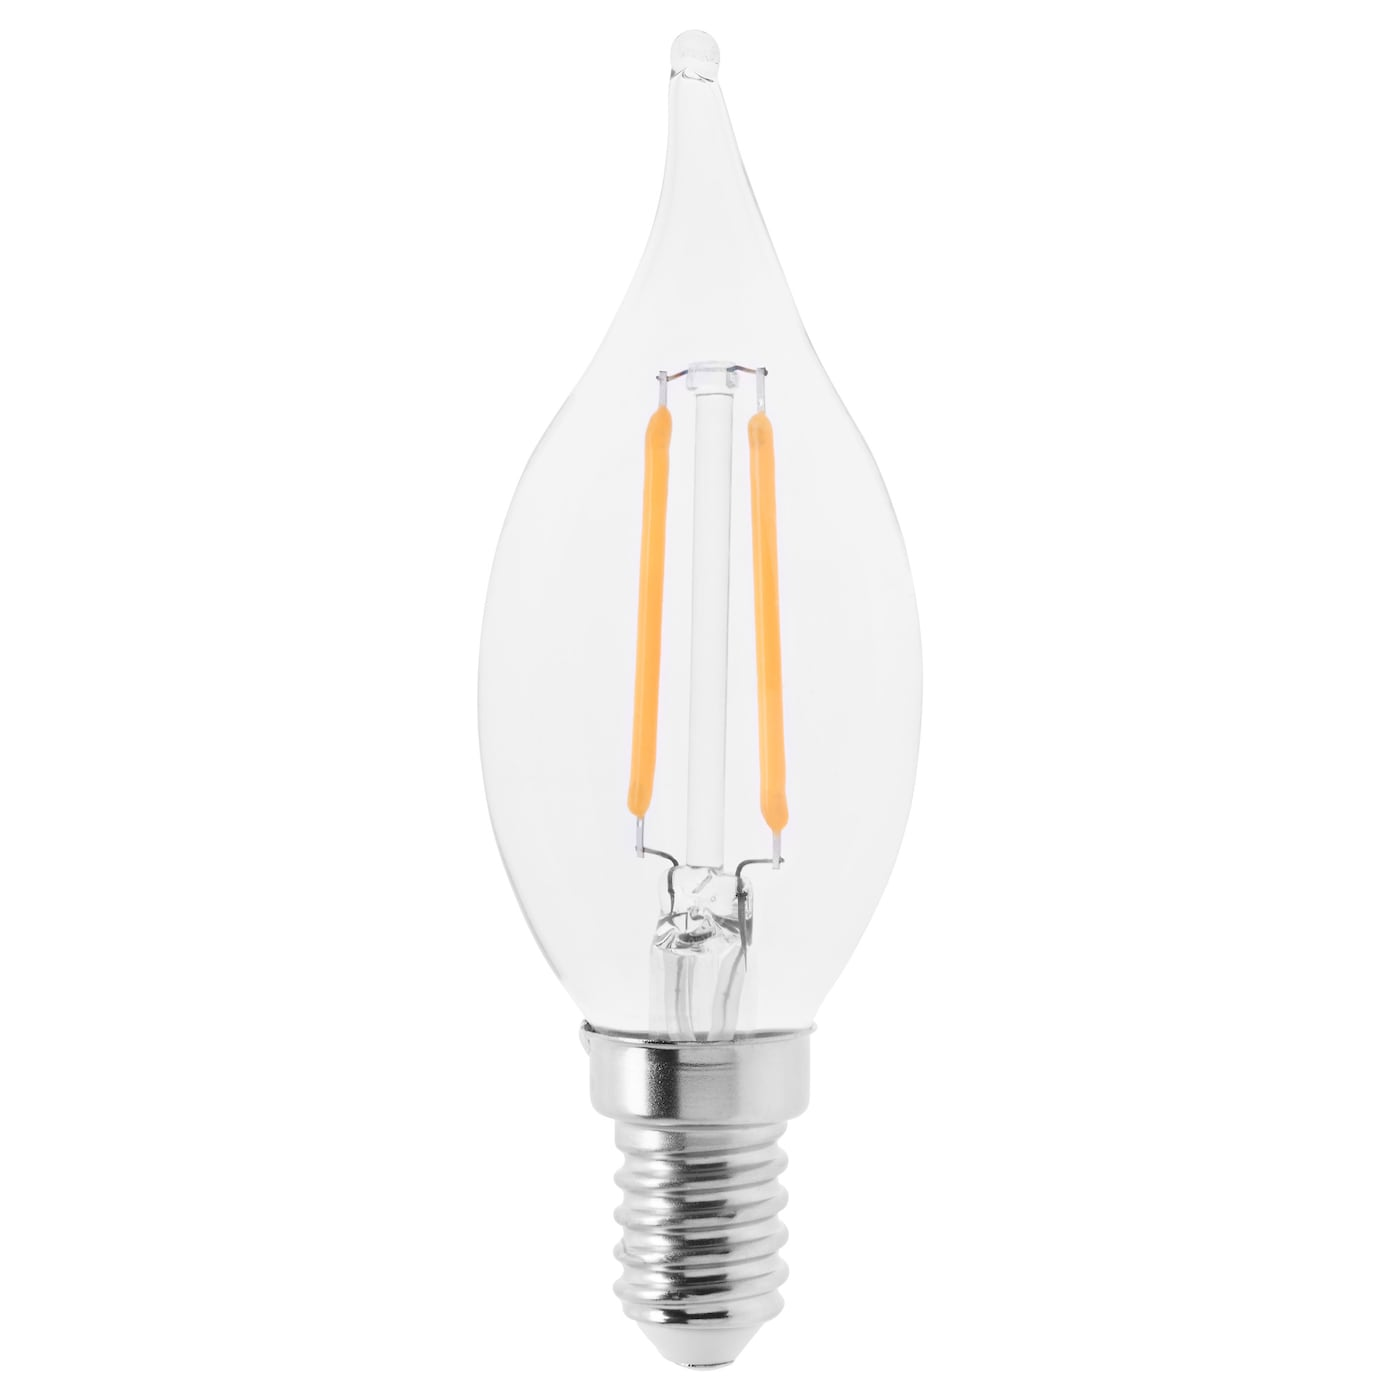 lunnom-led-bulb-e14-200-lumen-chandelier-clear-glass__0513091_pe638786_s5 Faszinierend E14 Led 400 Lumen Dekorationen